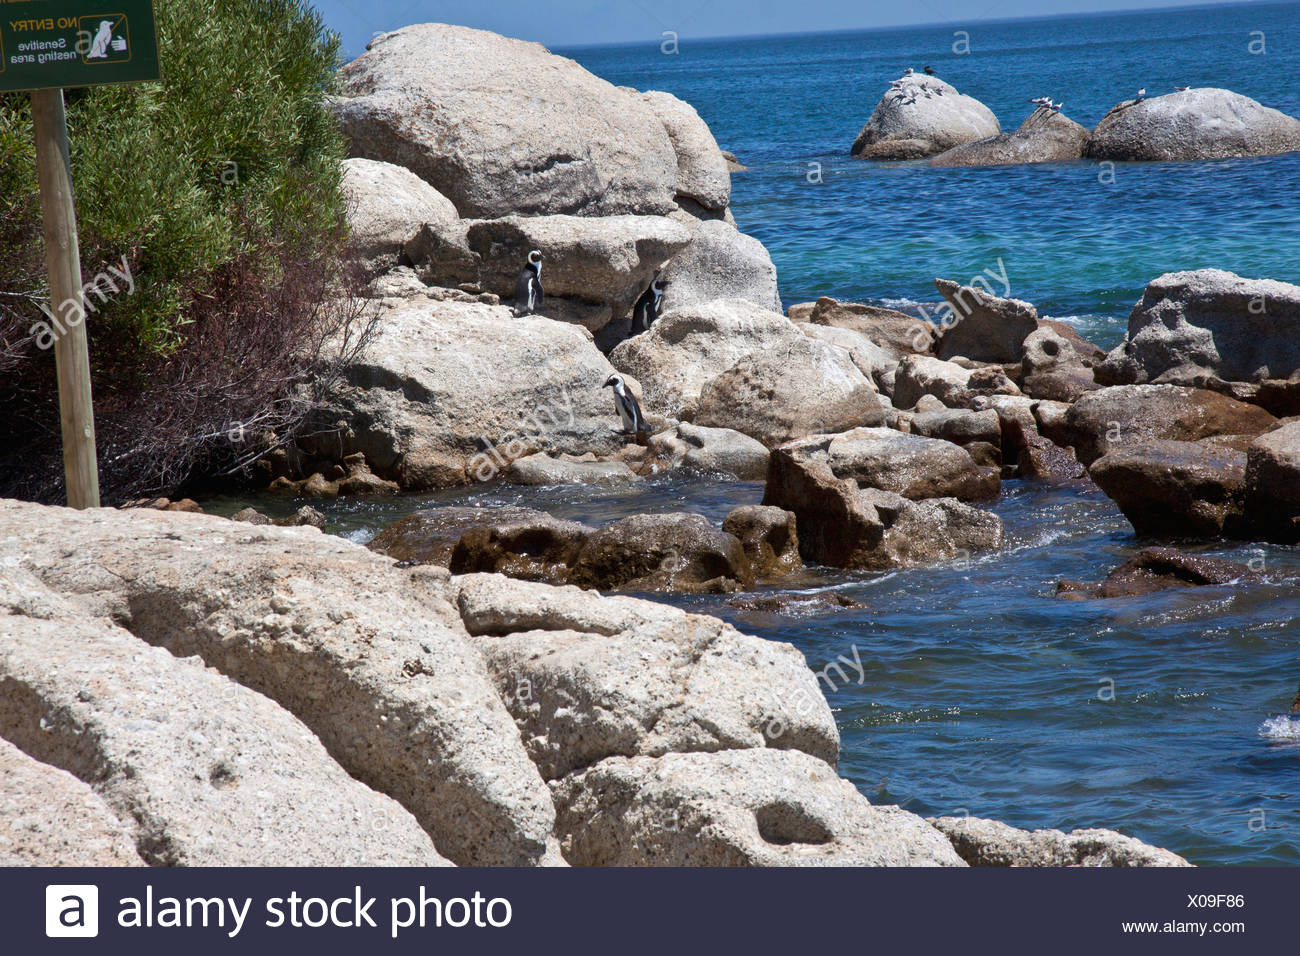 penguins on rock, western cape, south africa - Stock Image